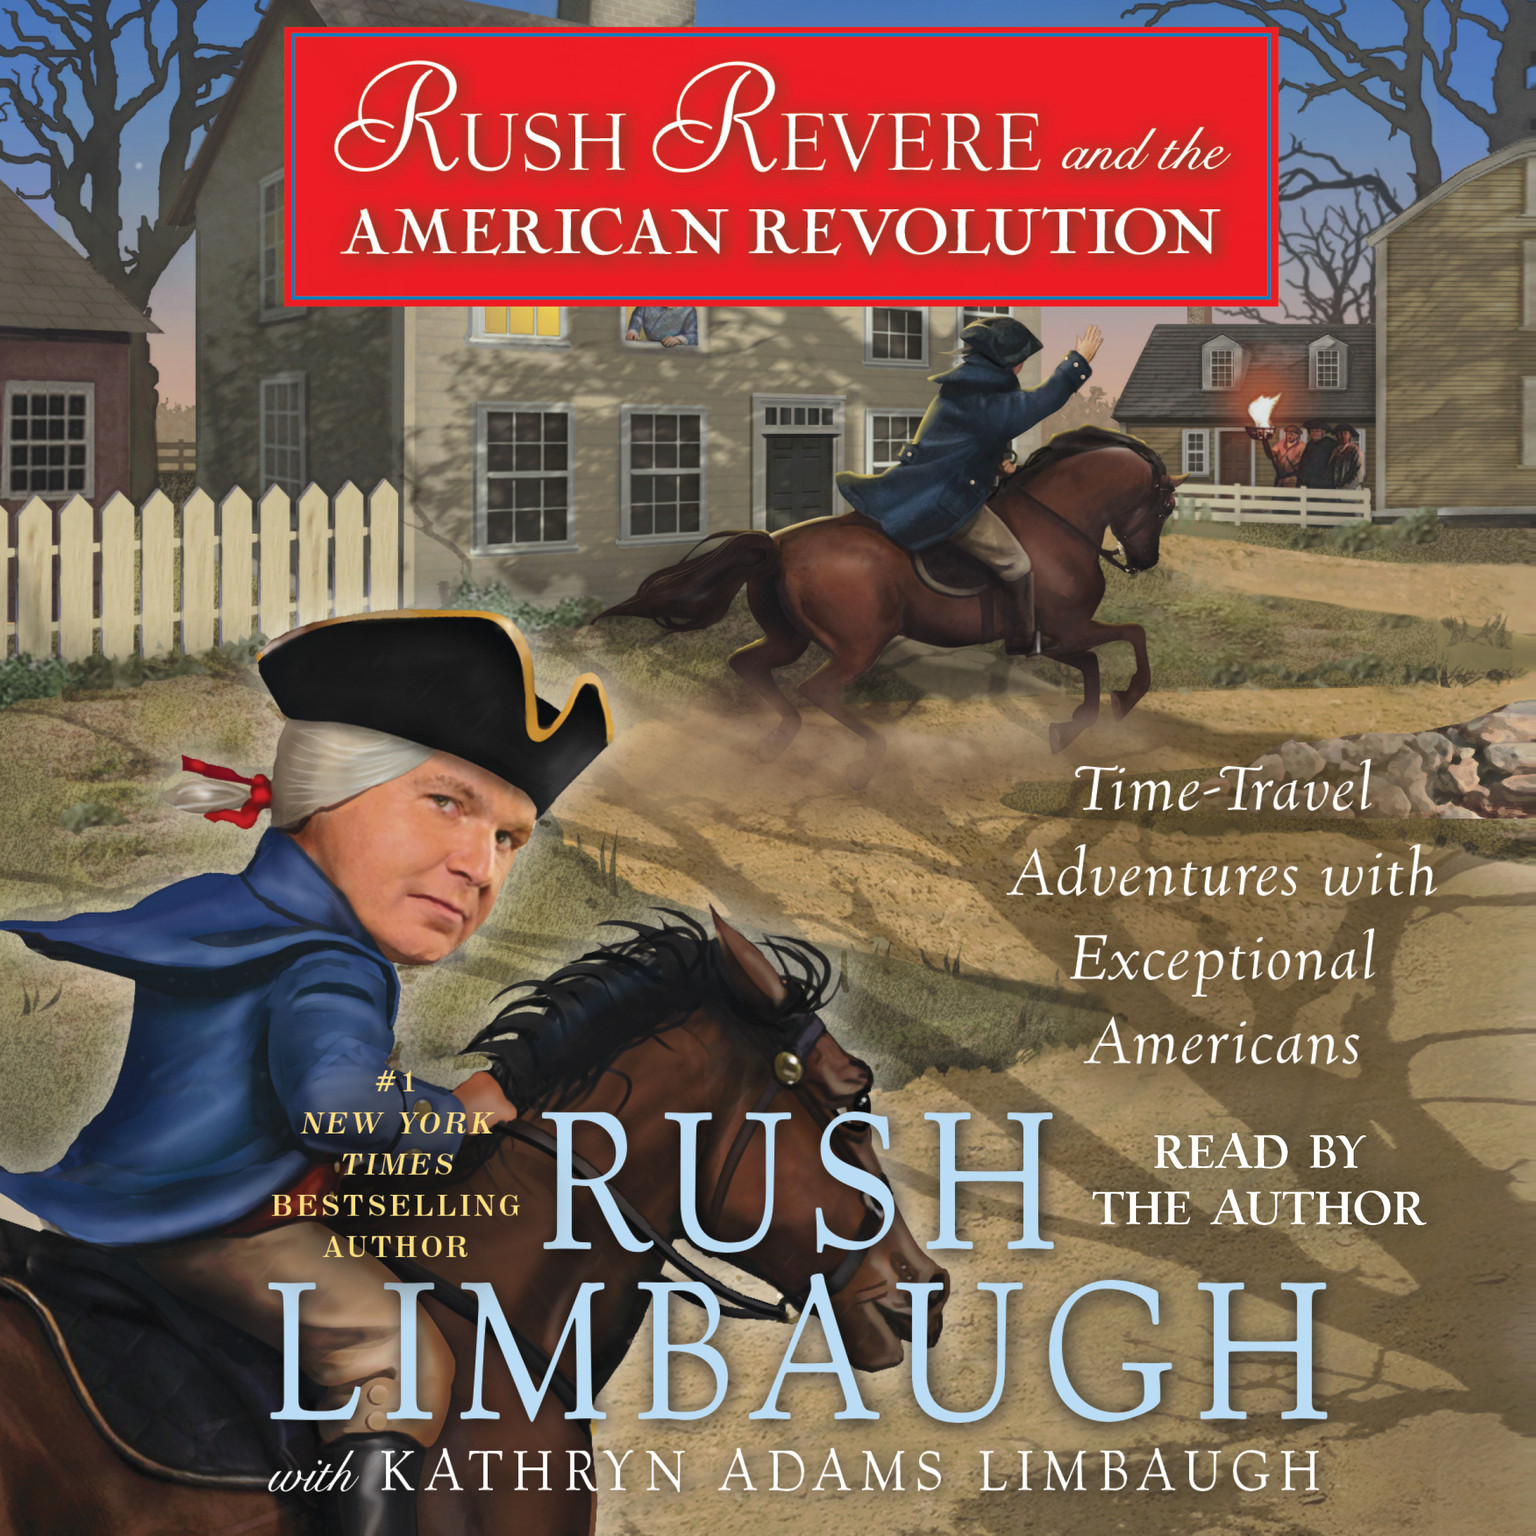 Printable Rush Revere and the American Revolution: Time-Travel Adventures With Exceptional Americans Audiobook Cover Art